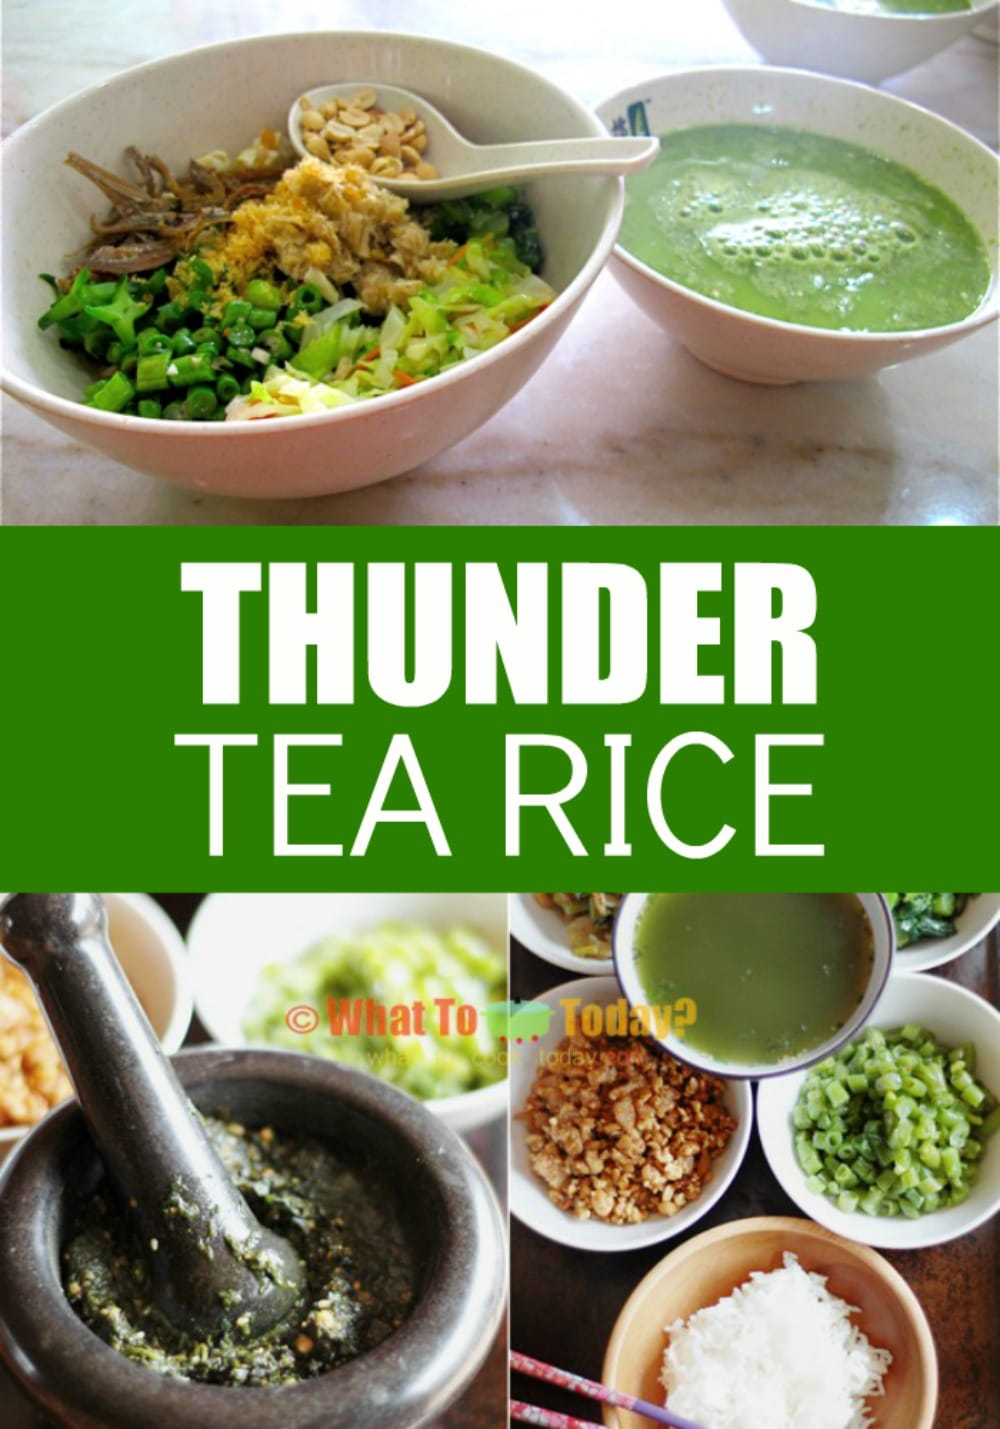 If you haven't tried thunder tea rice you are seriously missing out! Crazy flavors and overall an incredibly tasty dish!!